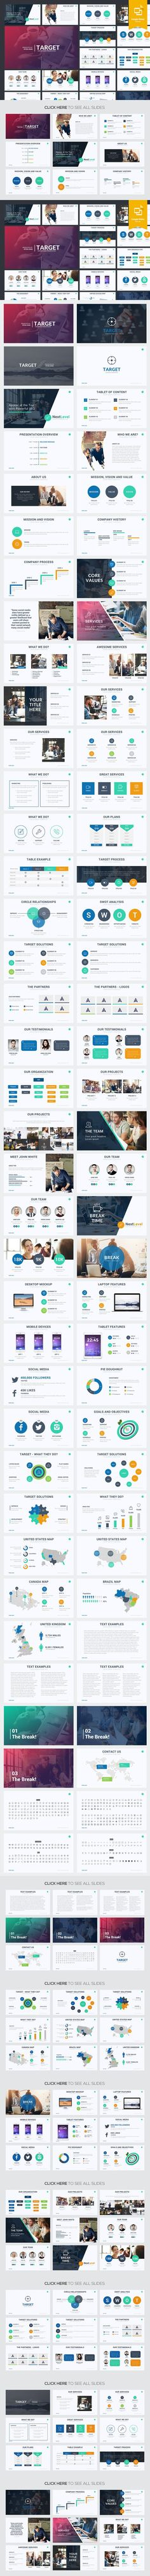 Modern art powerpoint presentation template business powerpoint target google slides template toneelgroepblik Image collections